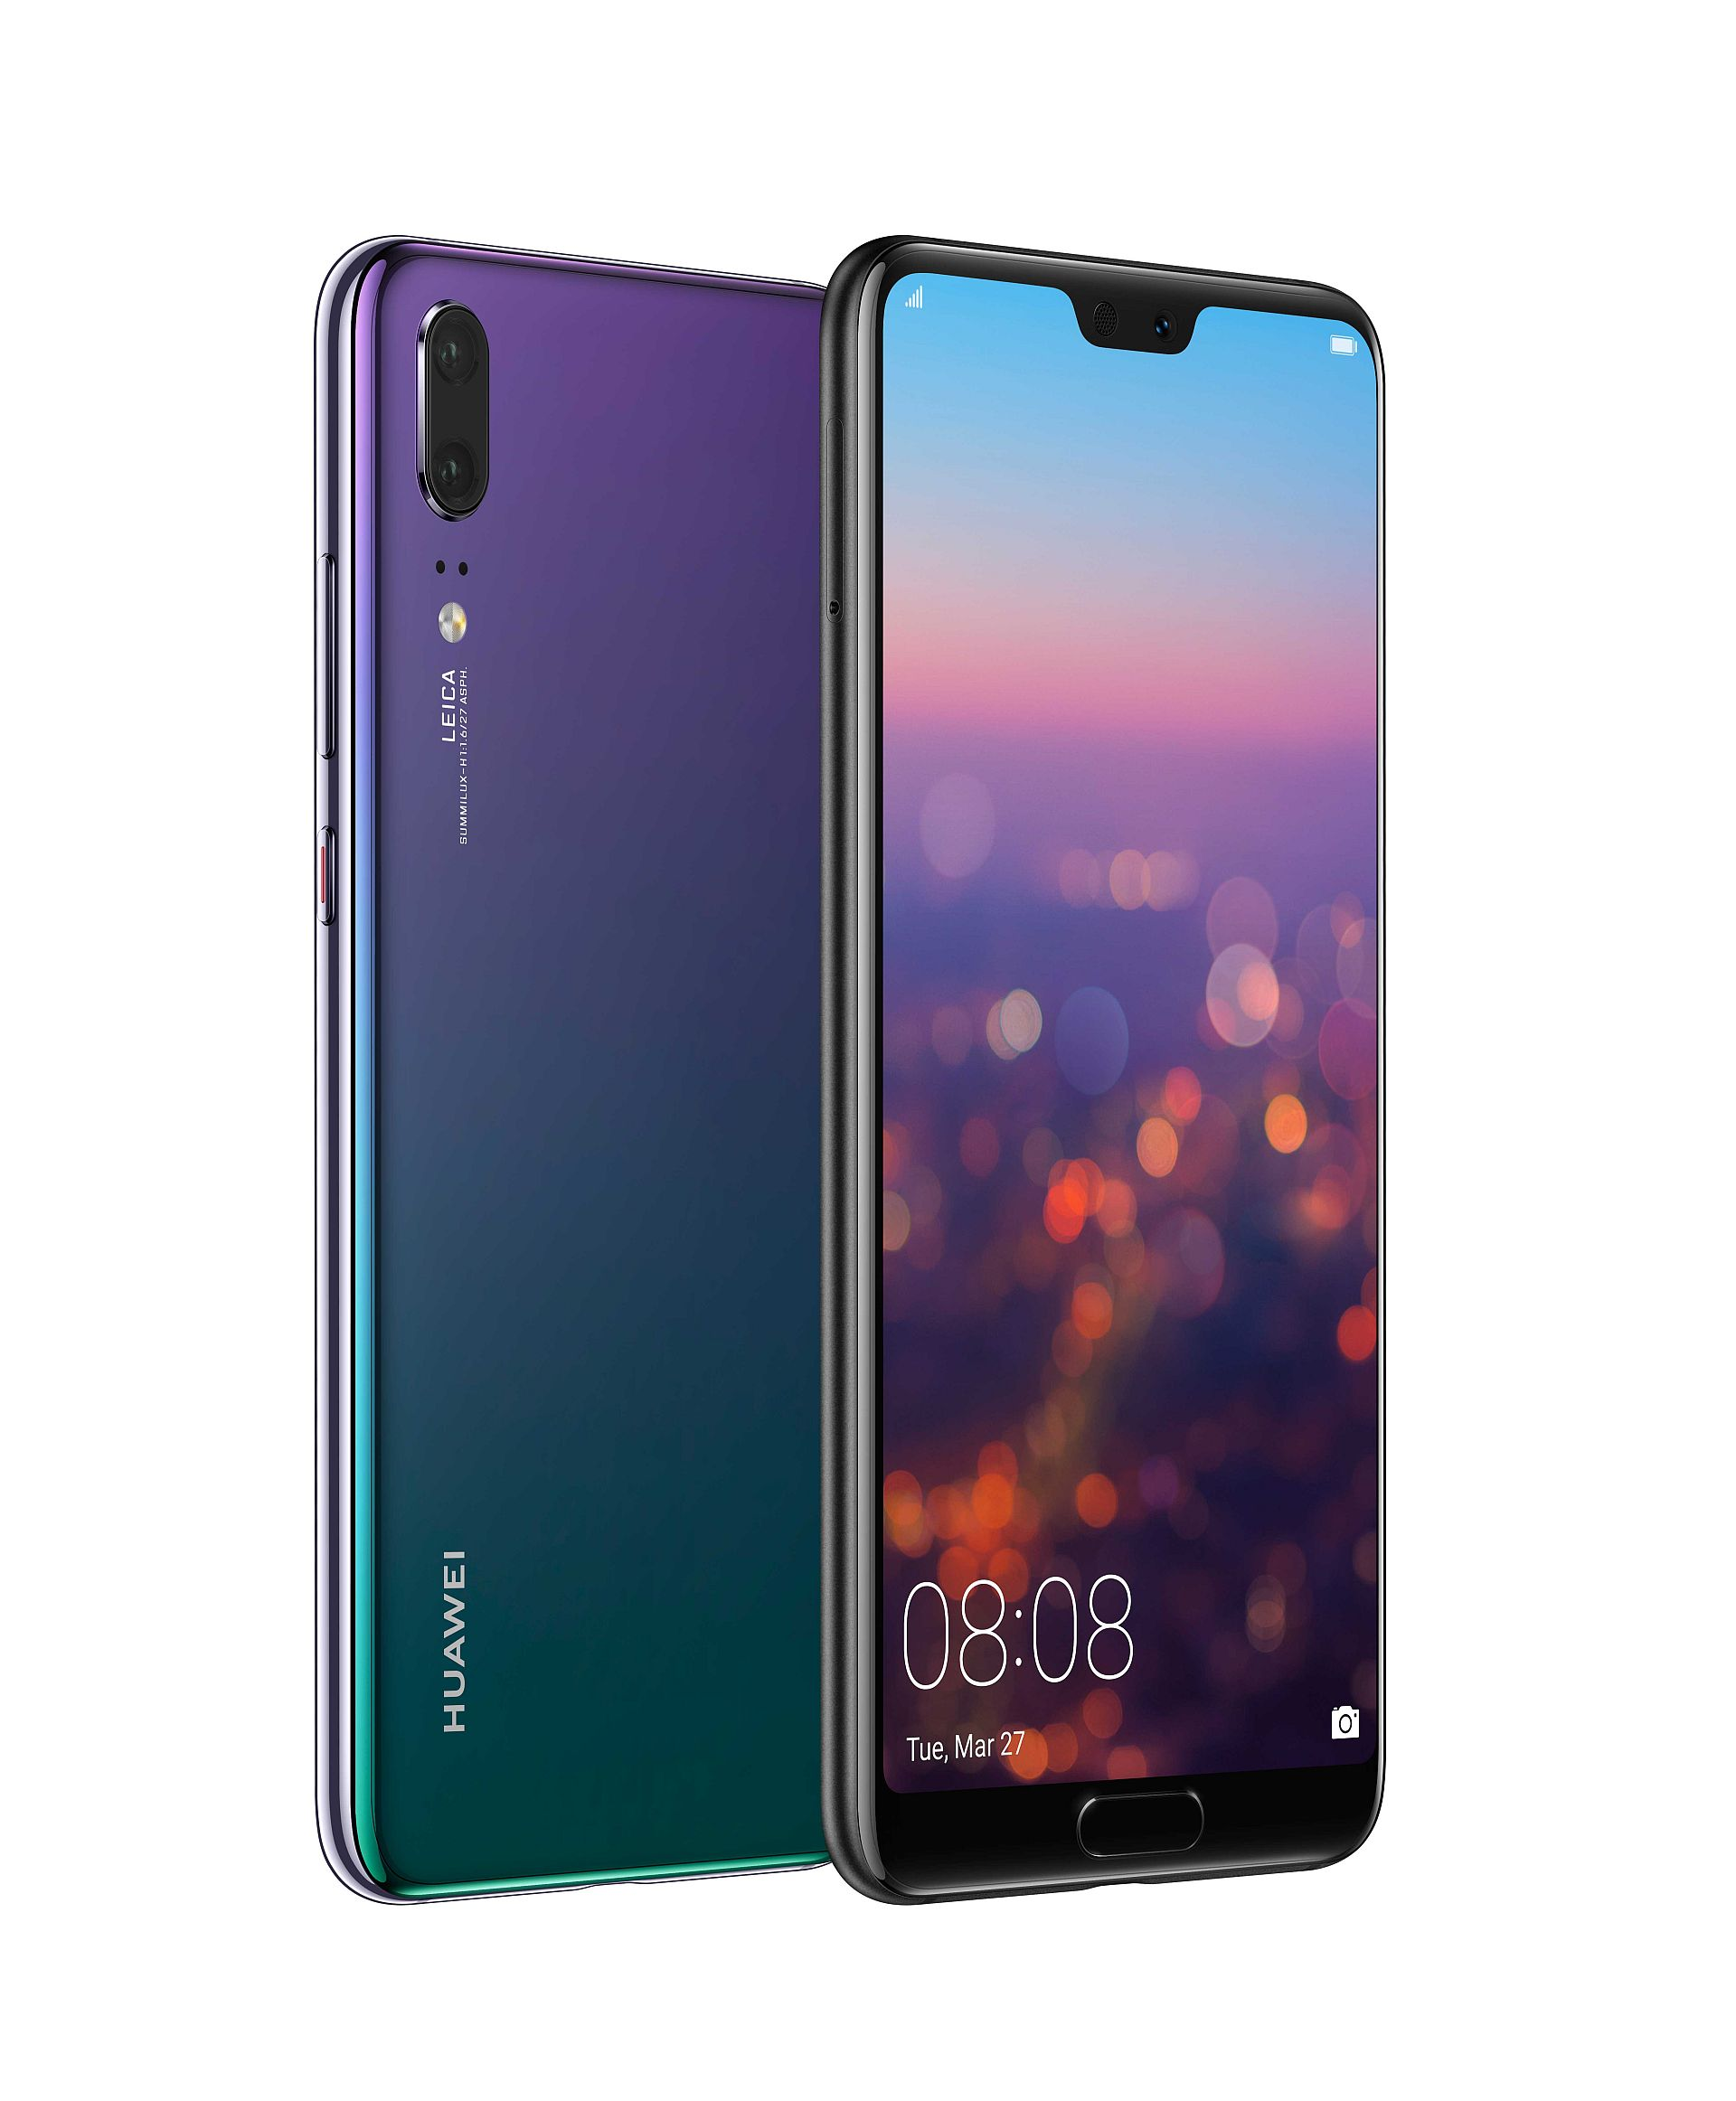 Huawei P20 P20 Pro Become Official With 24 Mp Front Camera Notch Triple Cam For Pro Model